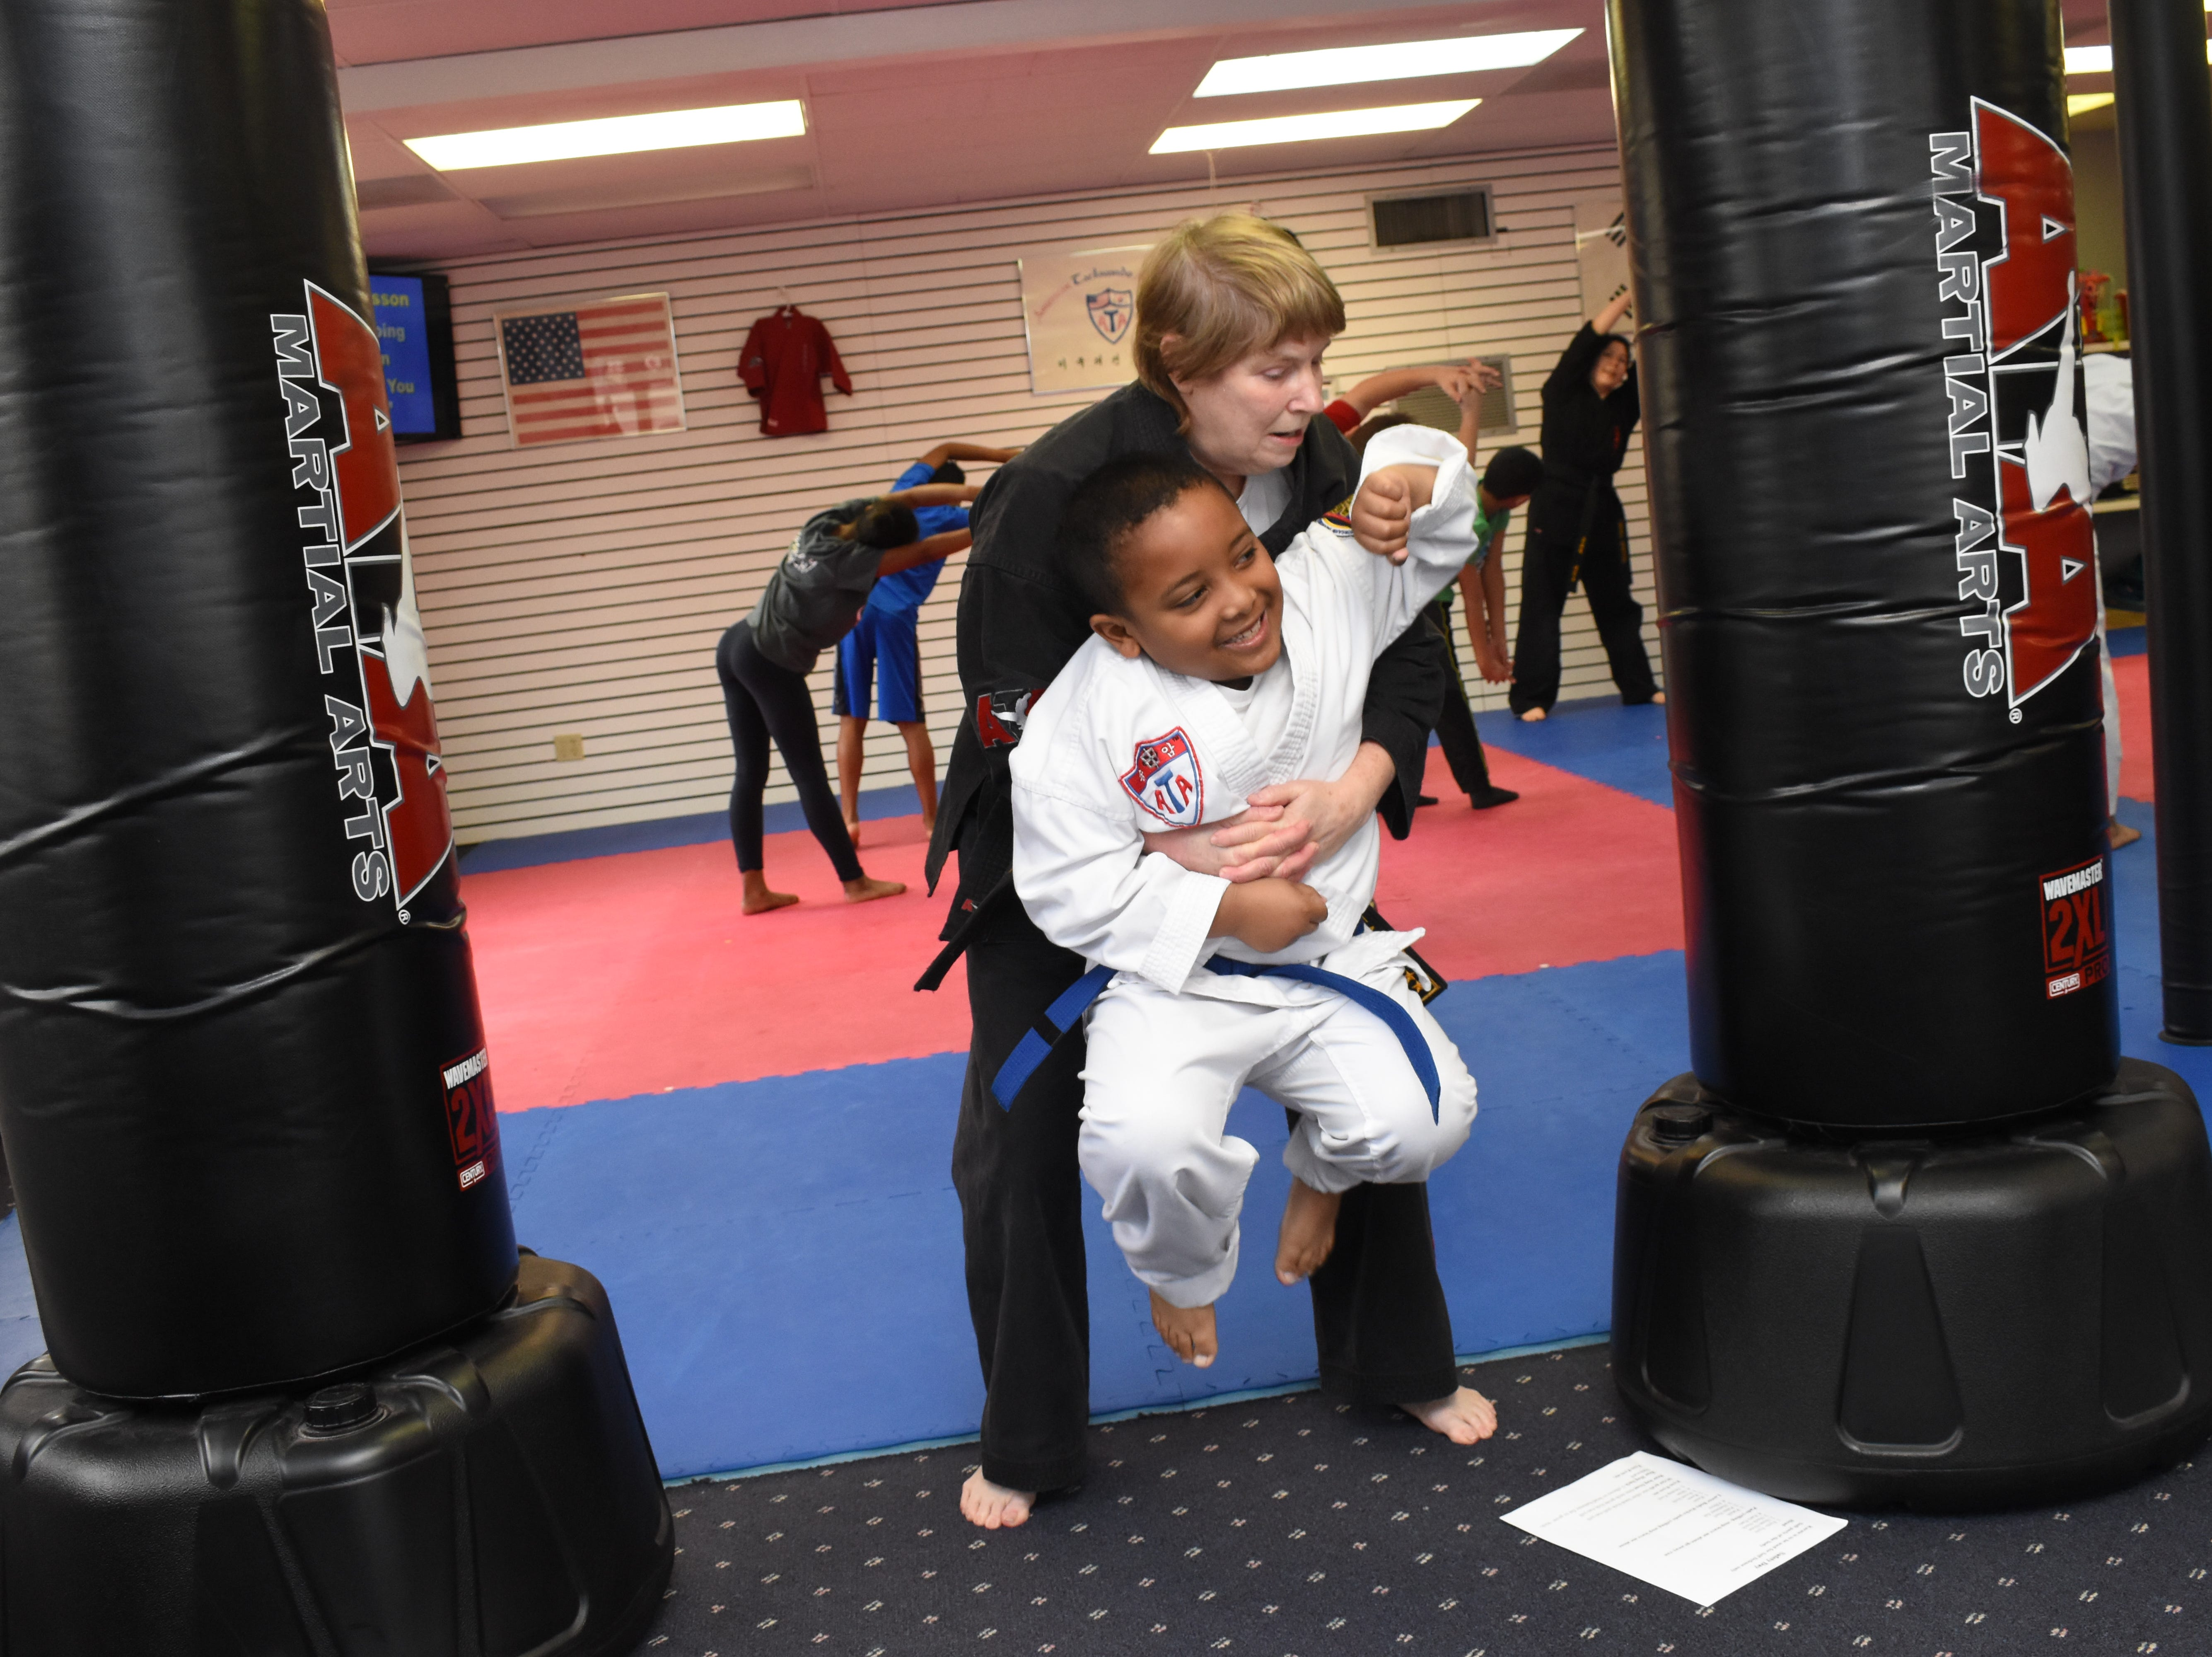 """Kaden Dunn (front) helps Carol Rousseau, owner of Master Rousseau's Taekwondo,with a demonstration on how to fight back if a stranger were to grab him from behind. A free """"Stranger Danger"""" defense class for children ages 7-12 was held Saturday, Feb. 16, 2019 at Master Rousseau's Taekwondo located on Jackson Street. Children were taught self-defense techniques to use if they to be grabbed by someone they did not know. They were advised to fight back and yell loudly. Also on hand to talk to the children were Rapides DARE officers Derek Parker with the Pineville Police Department and Vern Rennier with the Alexandria Police Department."""